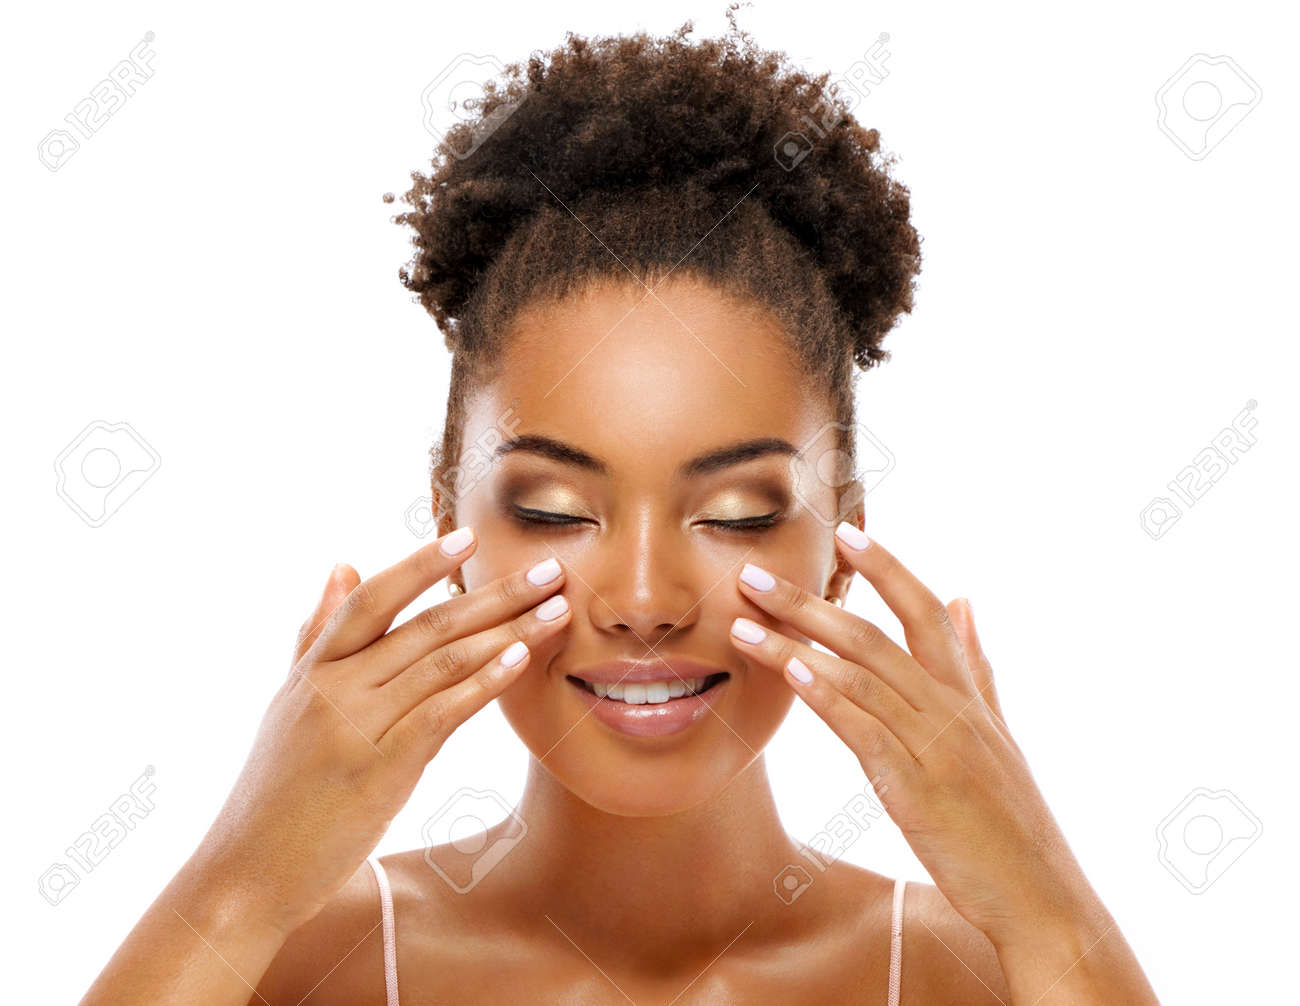 Beautiful woman doing facial massage, touching her face. Photo of african woman with clean healthy skin on white background. Skin care and beauty concept - 112682270